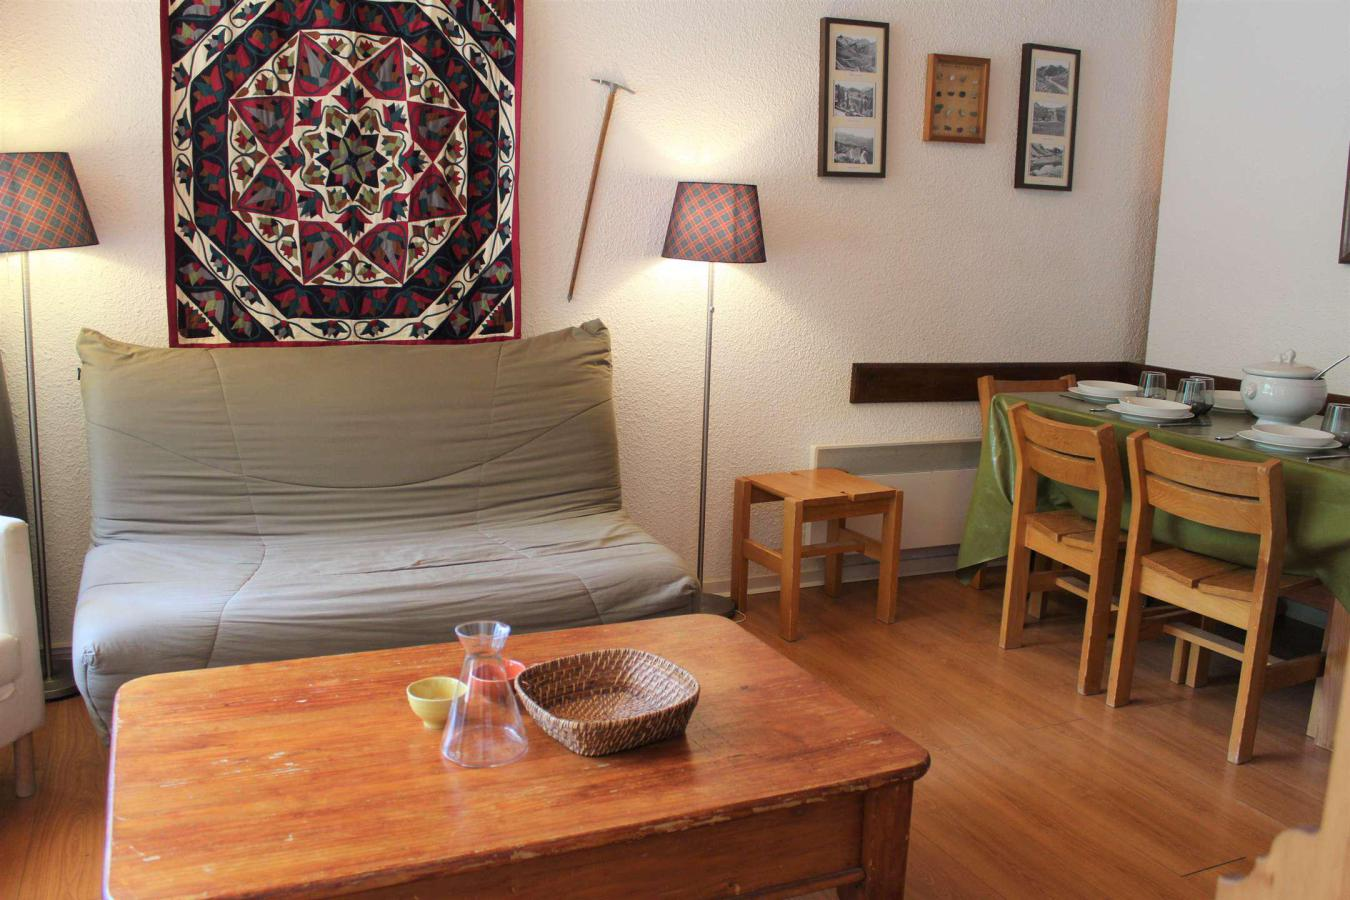 Location au ski Appartement 2 pièces cabine 6 personnes (407) - Residence Le Chambeyron - Vars